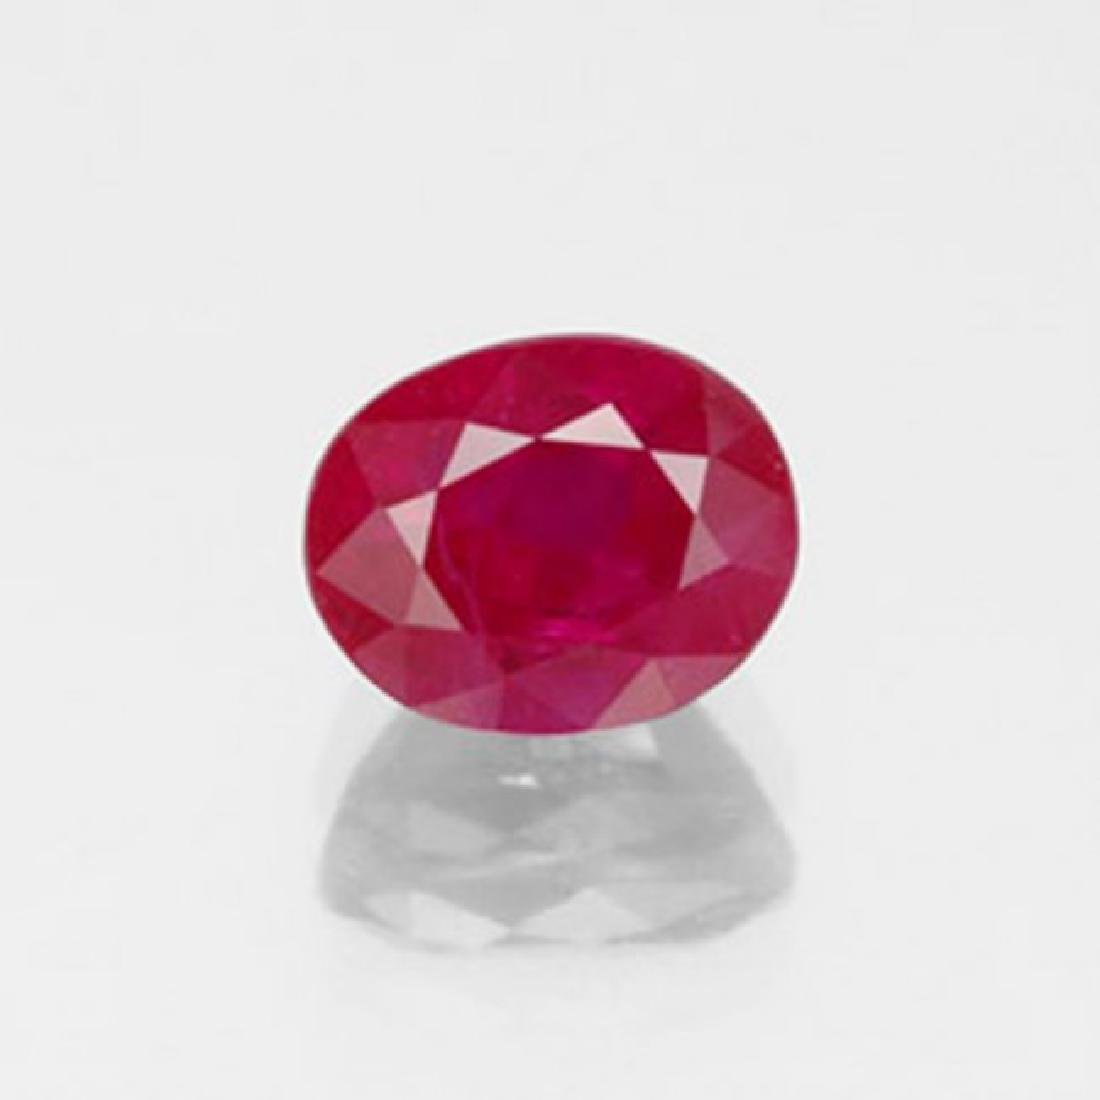 Loose Ruby Oval Fecet  1.26Ct 7.1x6.2x2.7mm